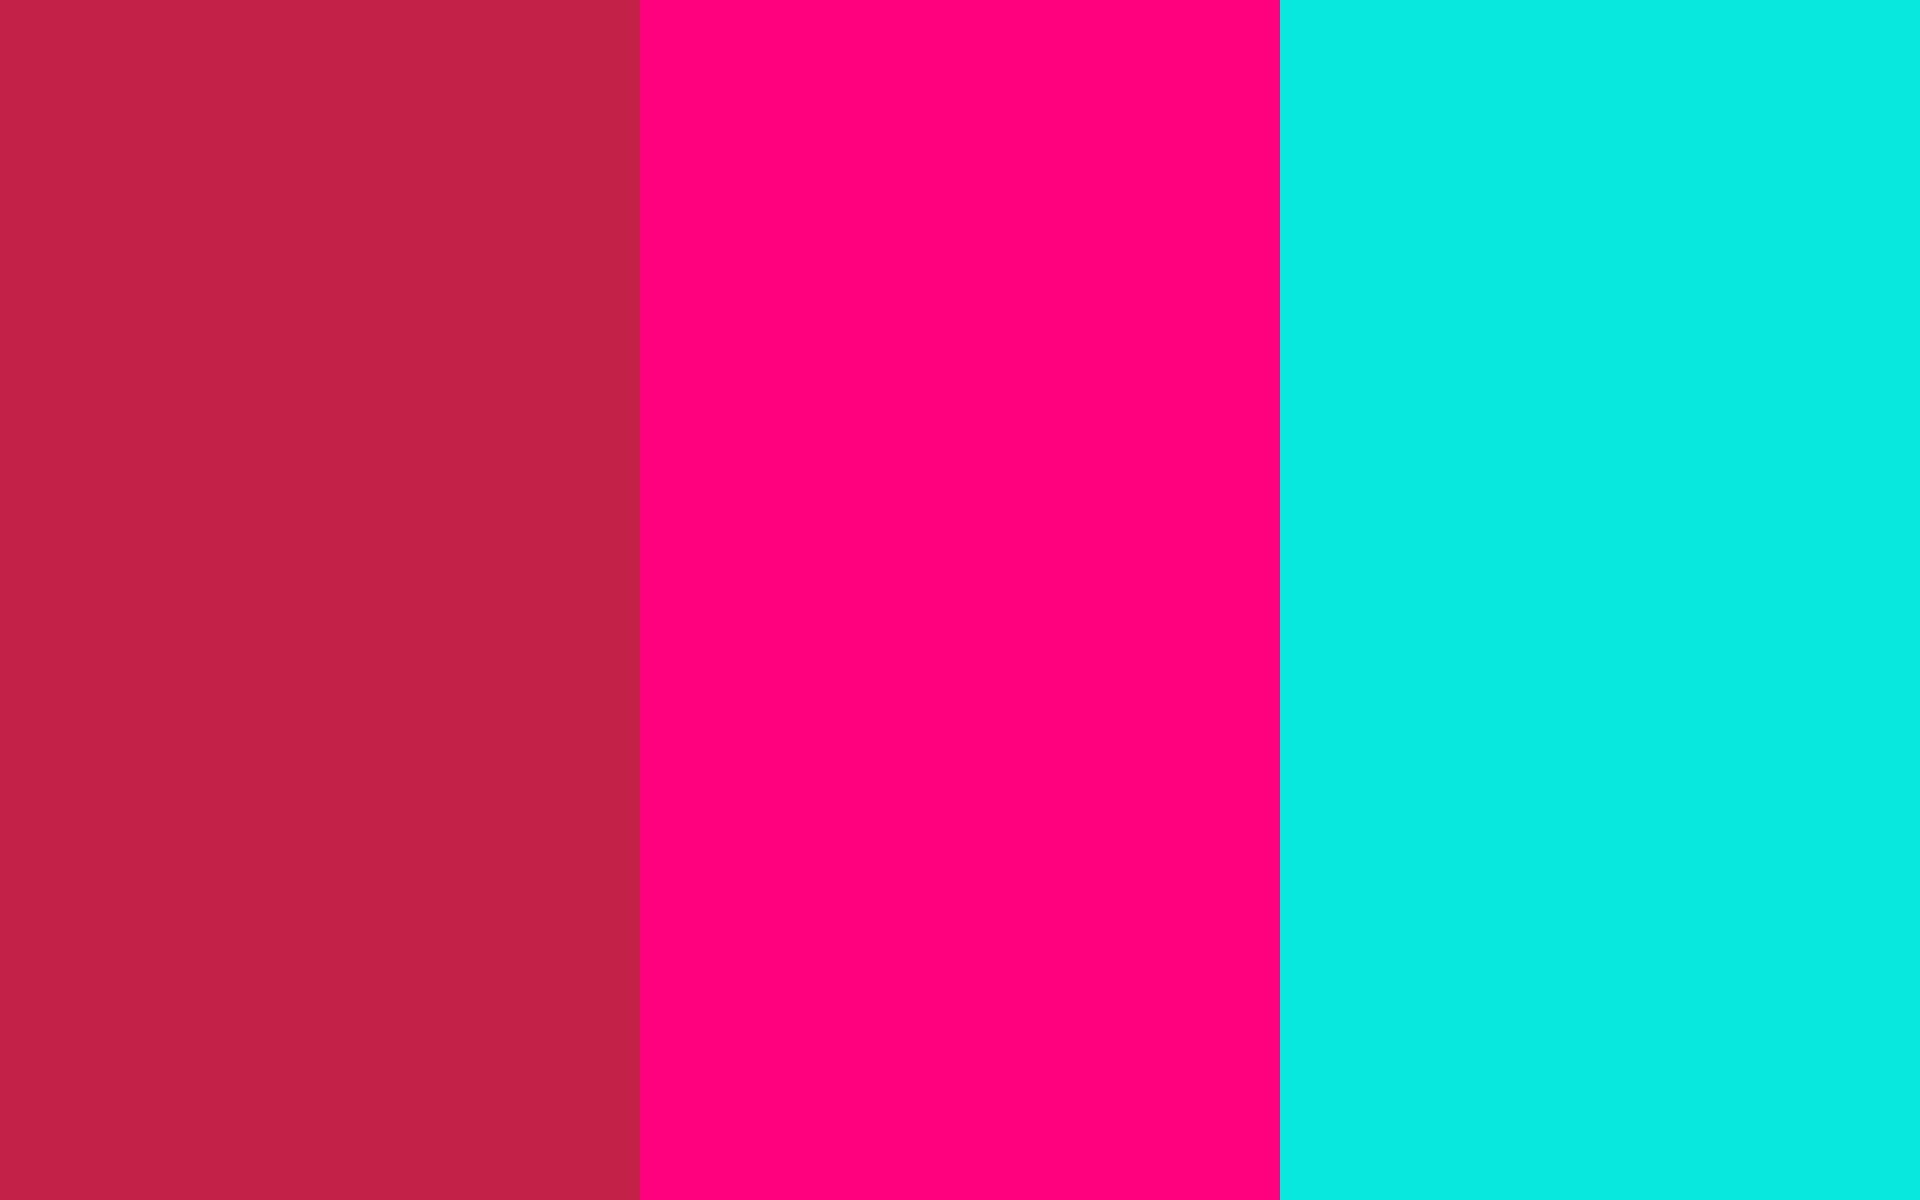 Neon pink wallpapers 59 images 1920x1200 bright hot pink solid backgrounds voltagebd Image collections